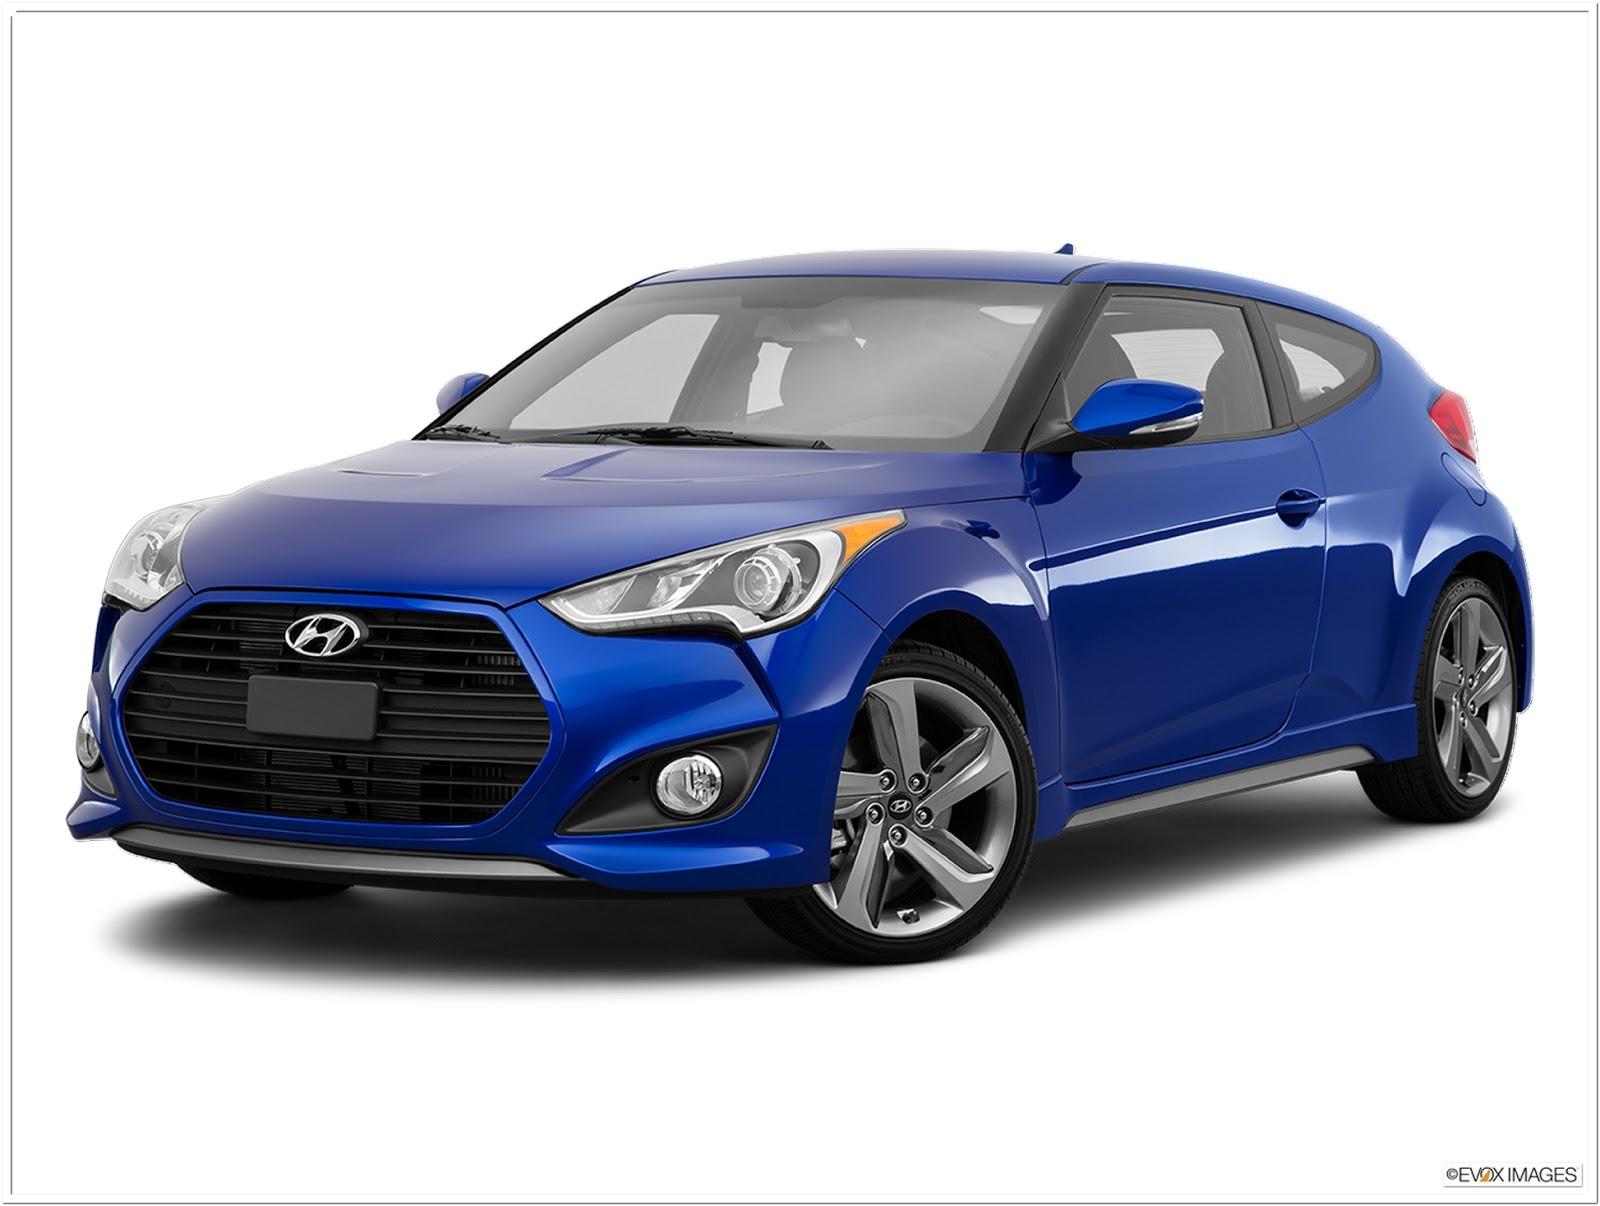 Two Door Cars Hyundai Veloster 2015 2 Doors Hyundai Sport Car